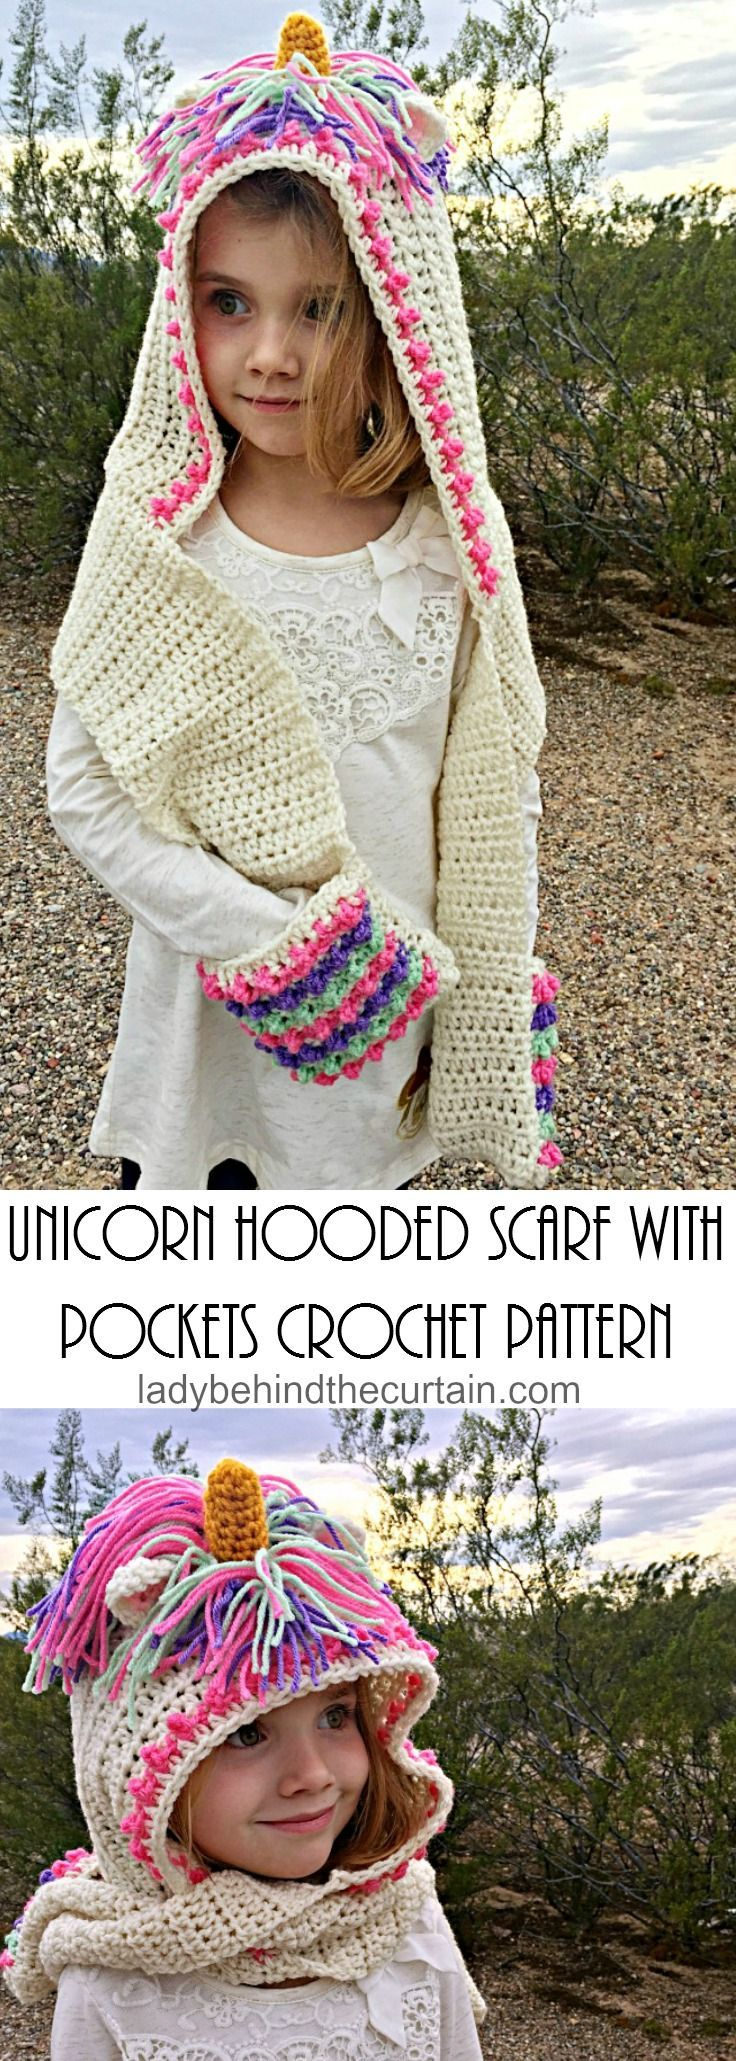 Unicorn Hooded Scarf with Pockets Crochet Pattern | Beautiful Cases For Girls